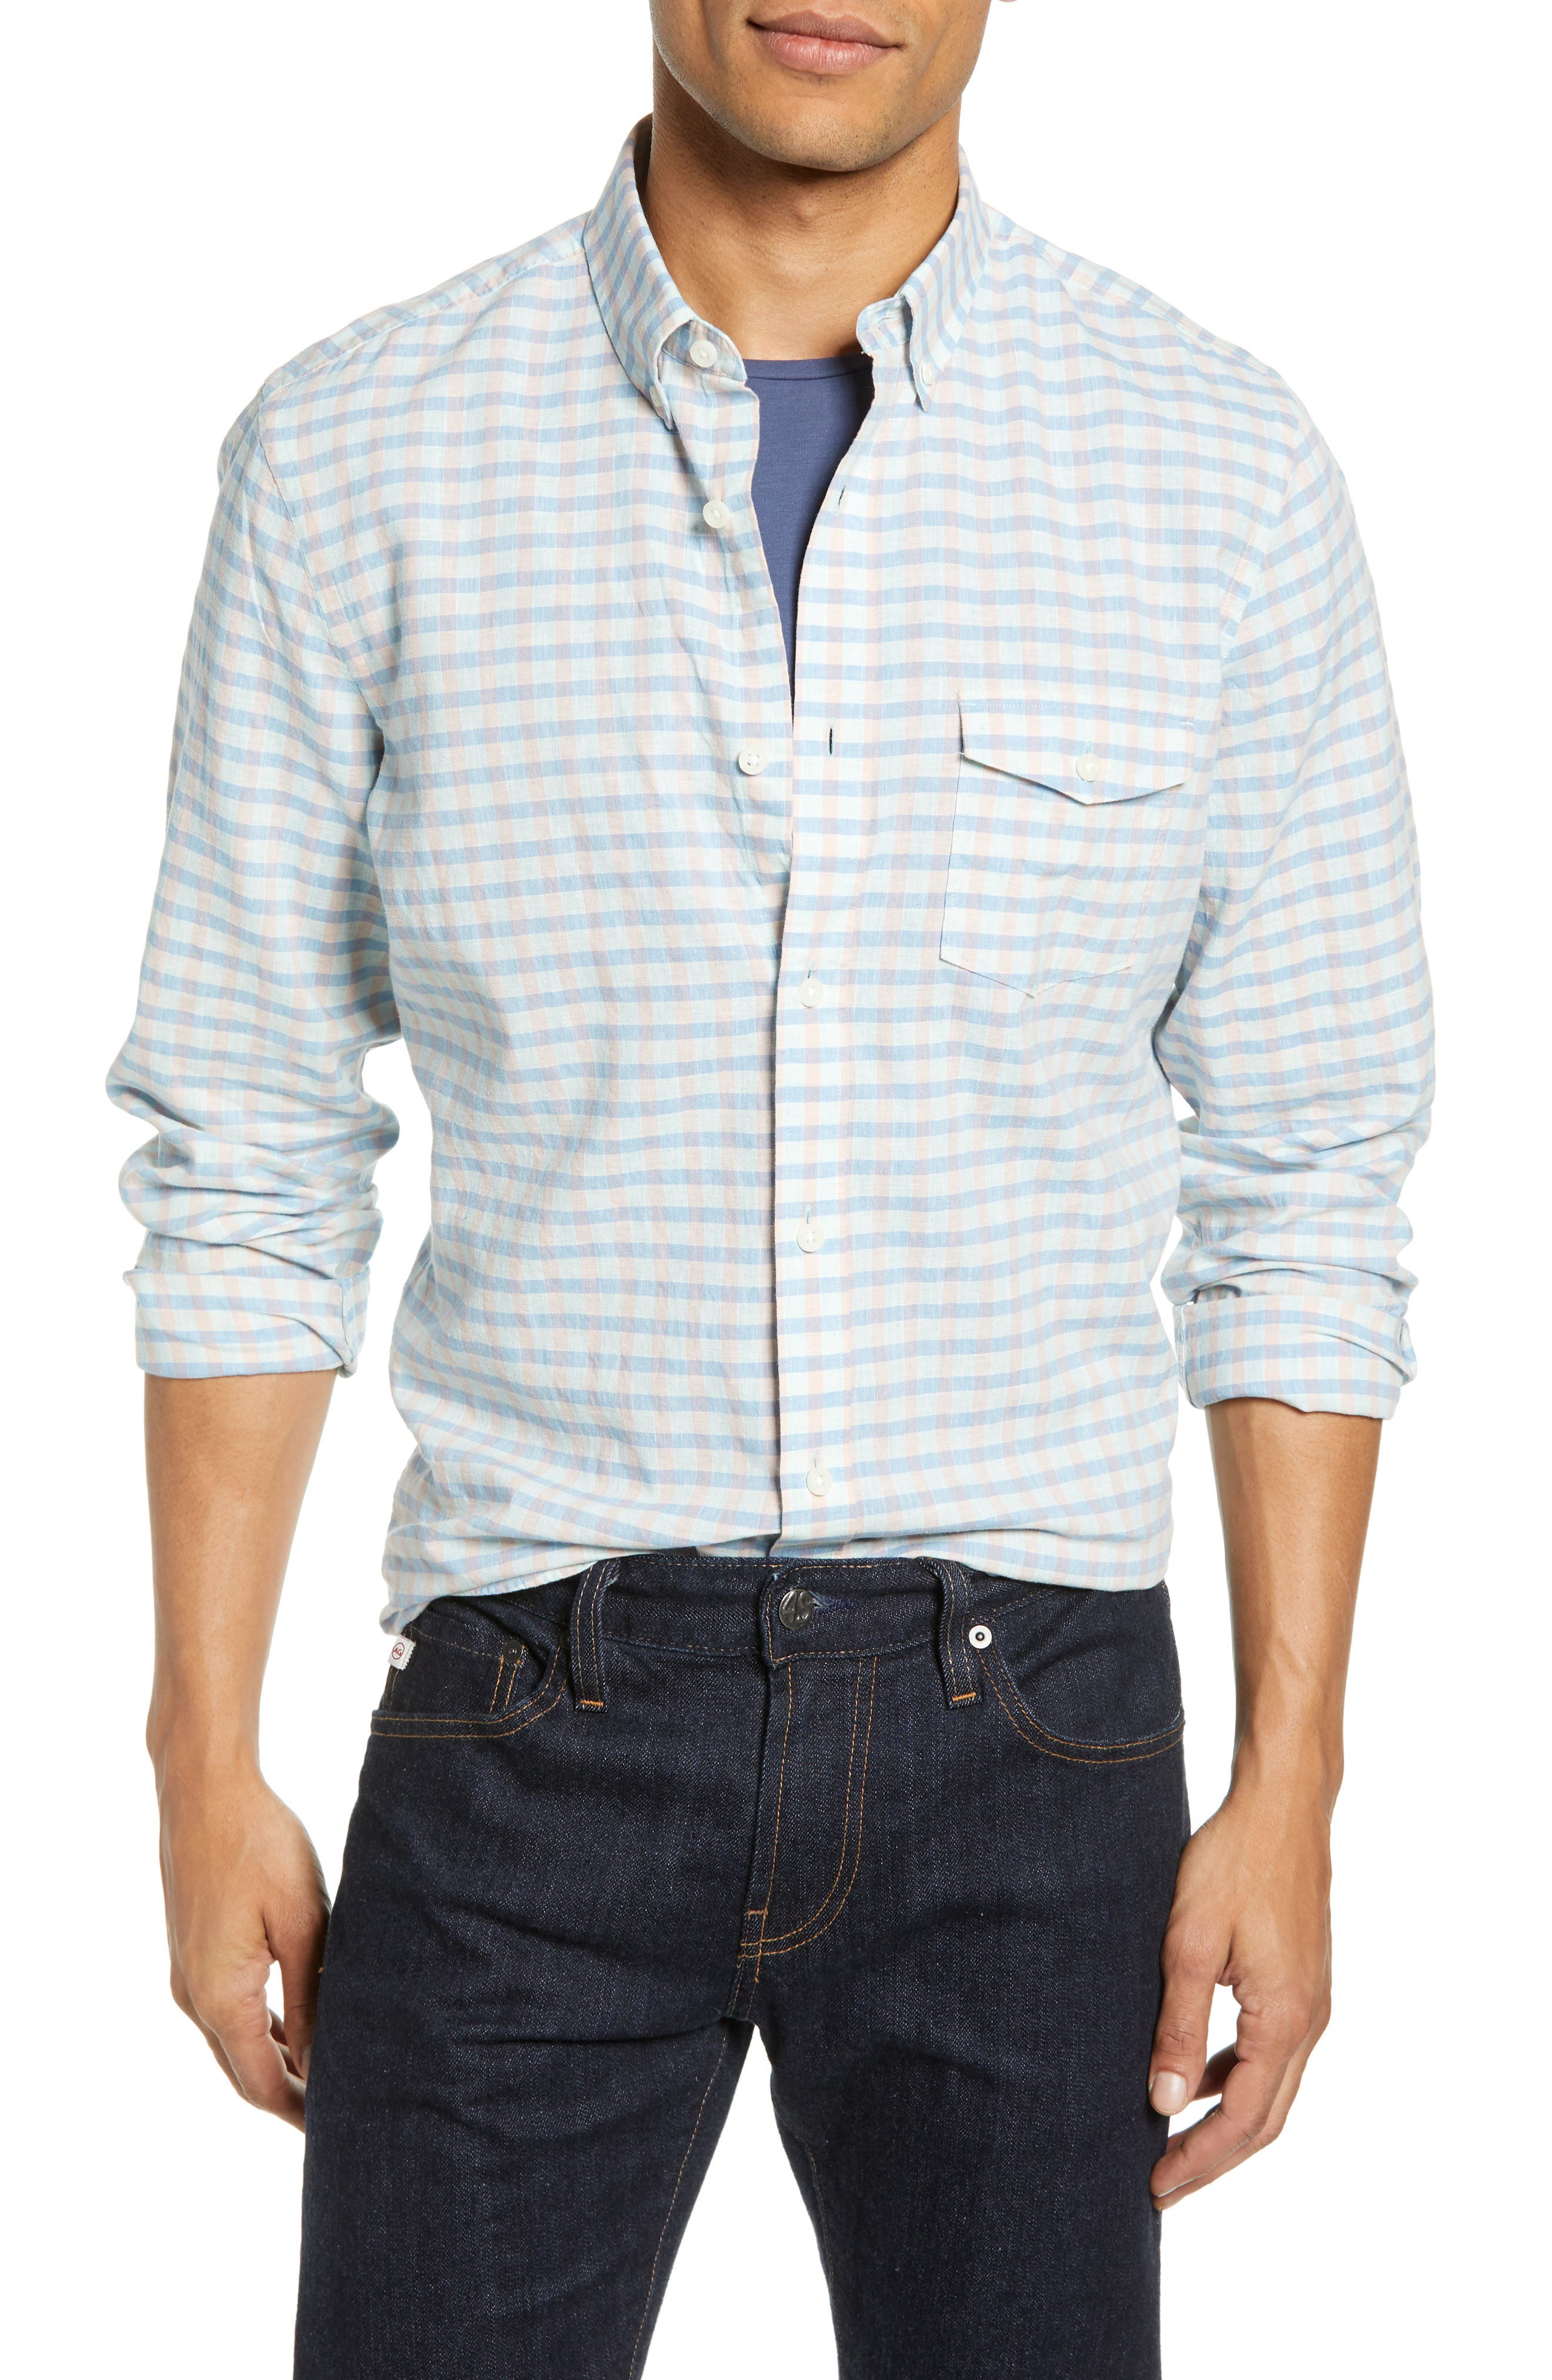 Ivy Heather Linen Blend Slim Fit Sport Shirt, Main, color, TEAL FAIR BLUE GINGHAM